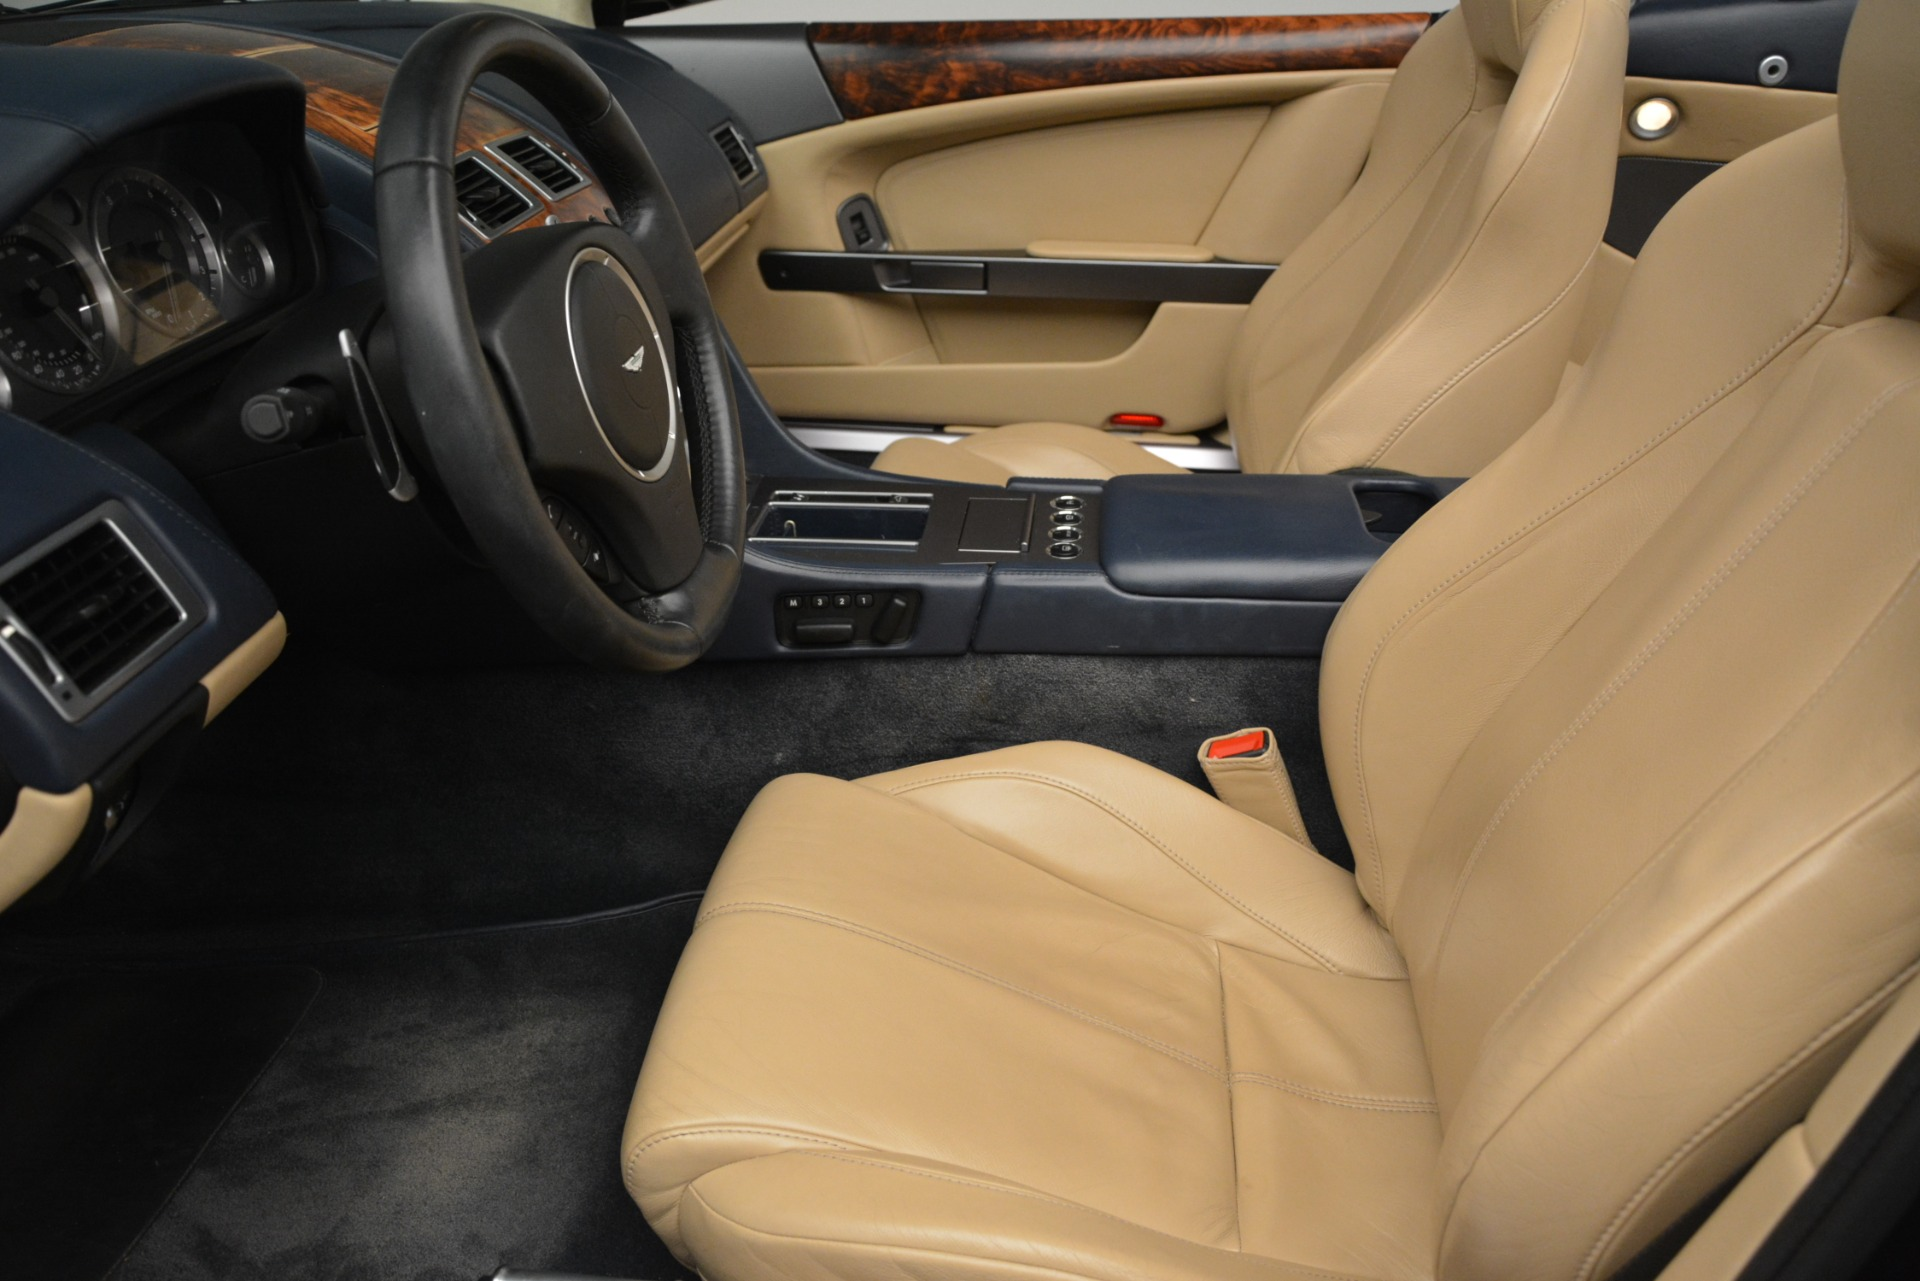 Used 2007 Aston Martin DB9 Convertible For Sale In Westport, CT 3291_p15